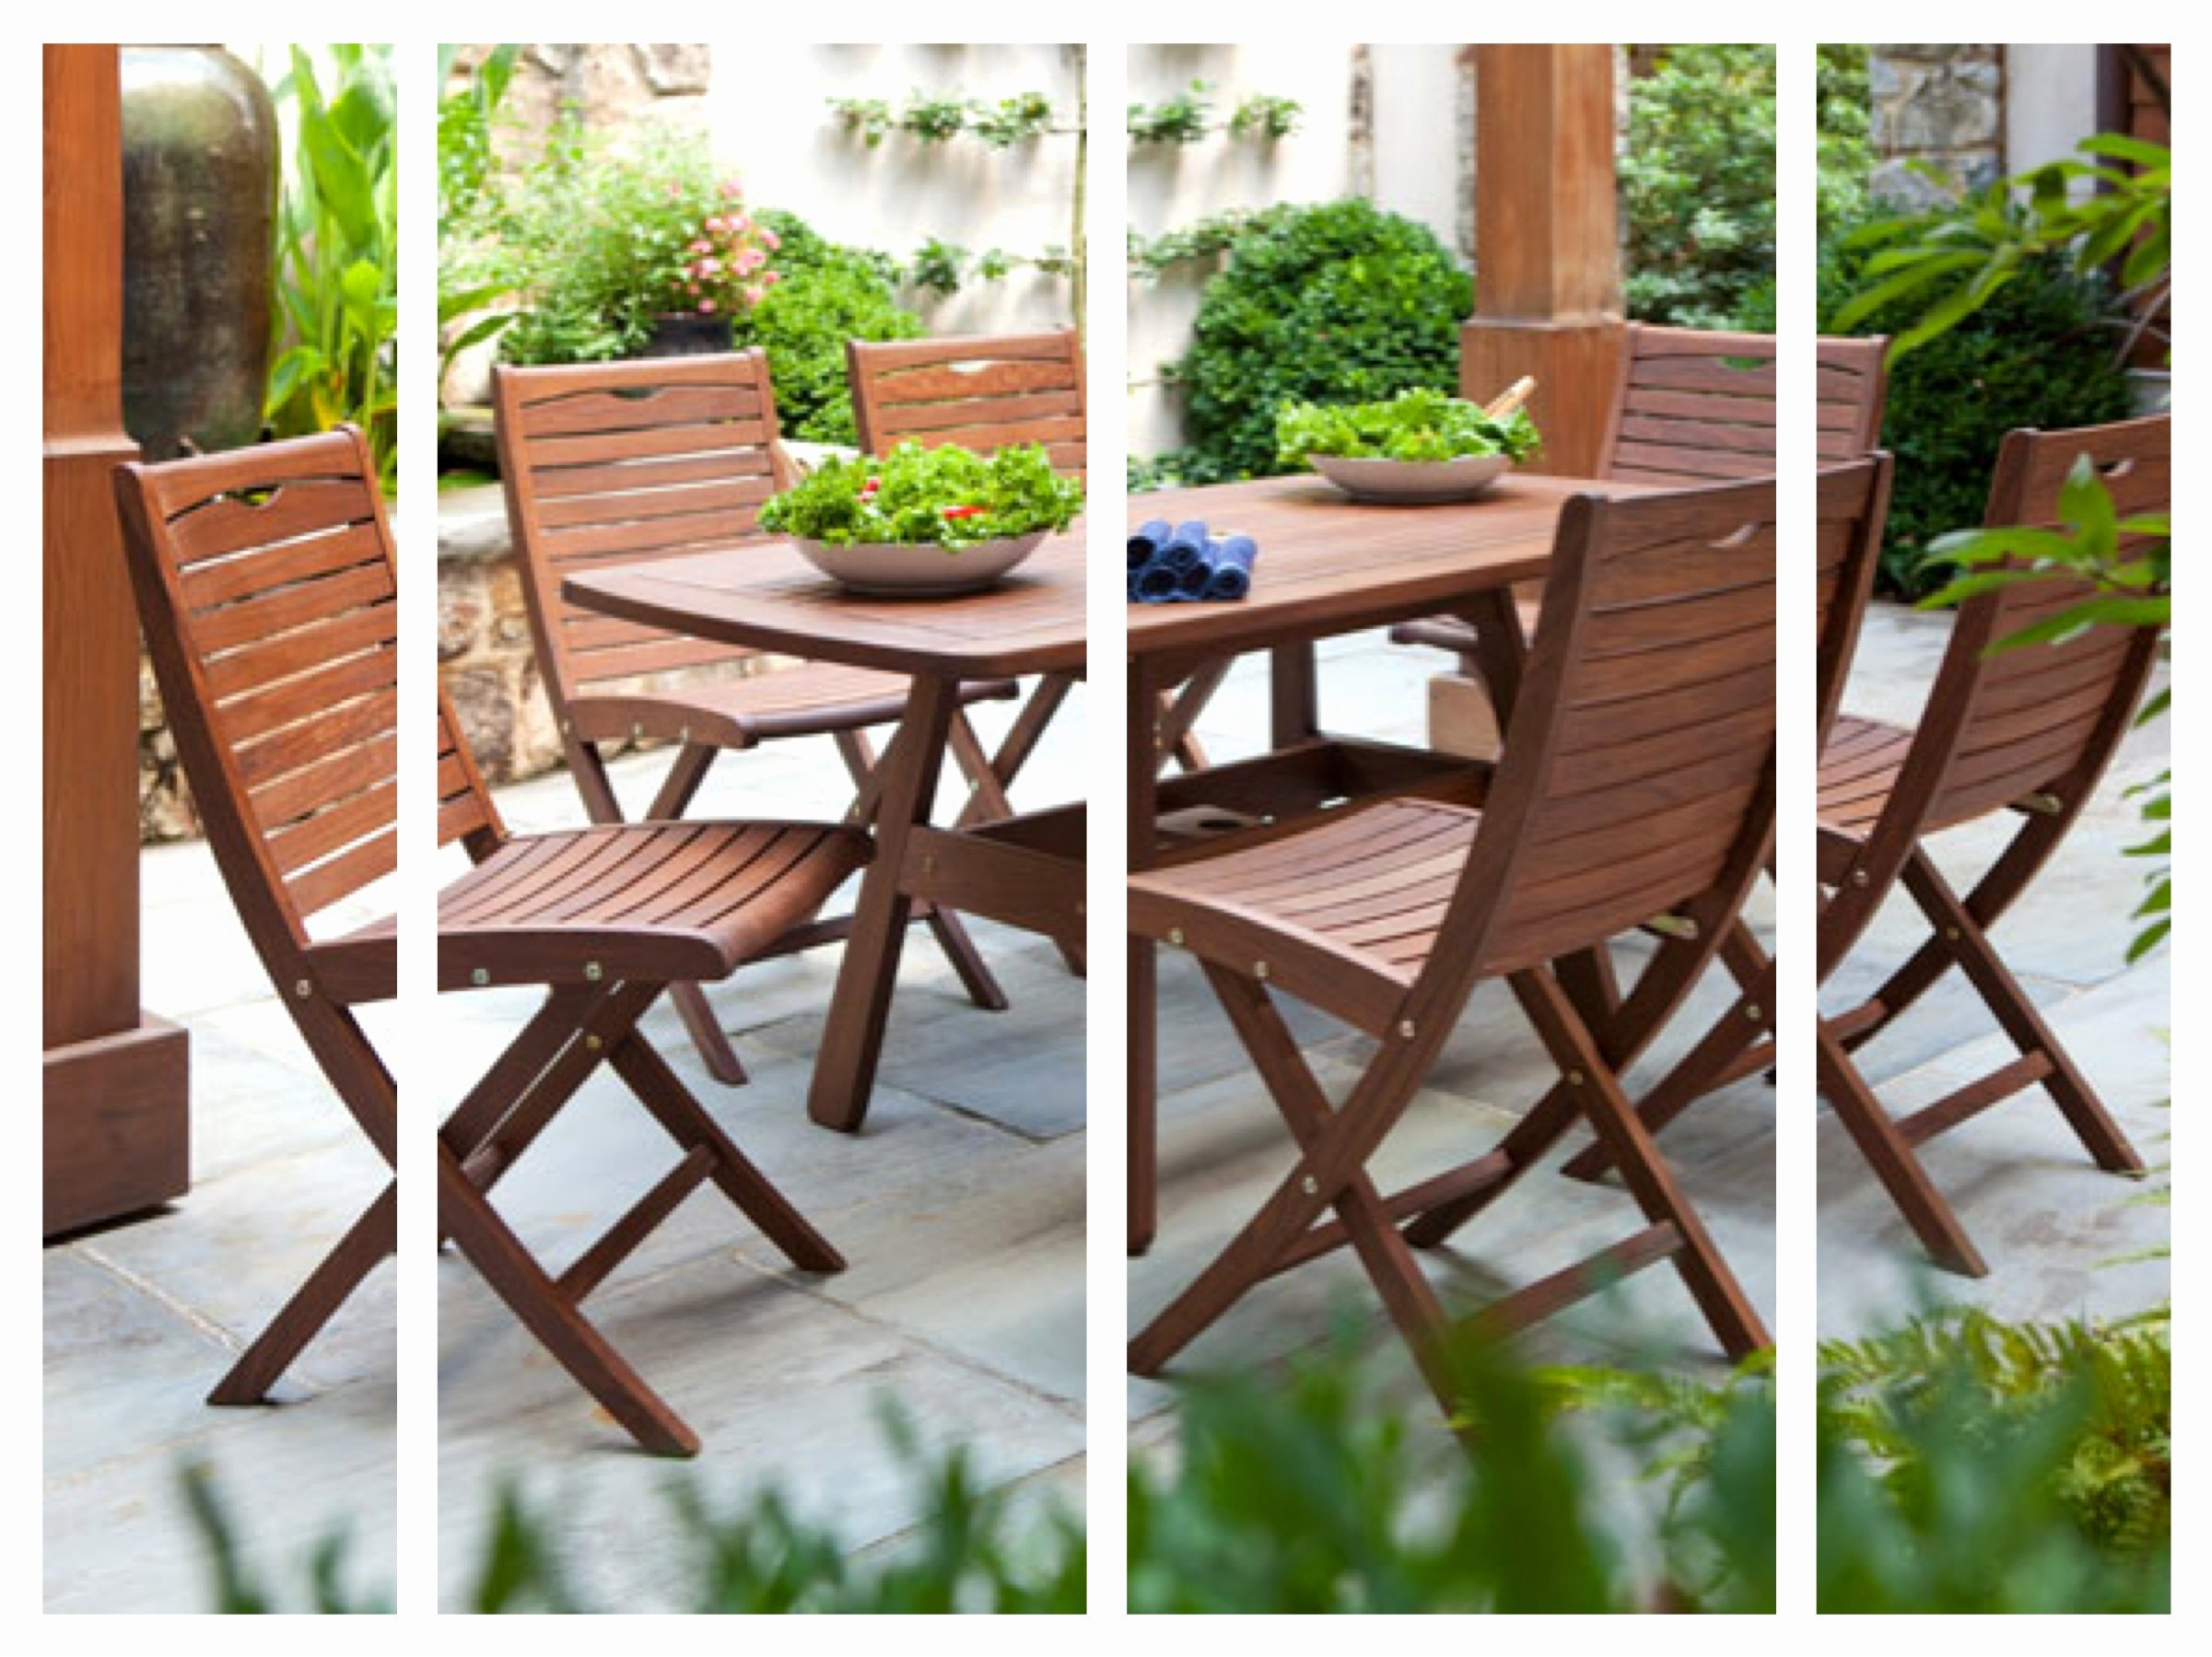 clamp table extraordinary bar cuisine best new outdoor appealing bootstrap design awesome template format free for accent tables corner dining room mosaic garden and chairs yard